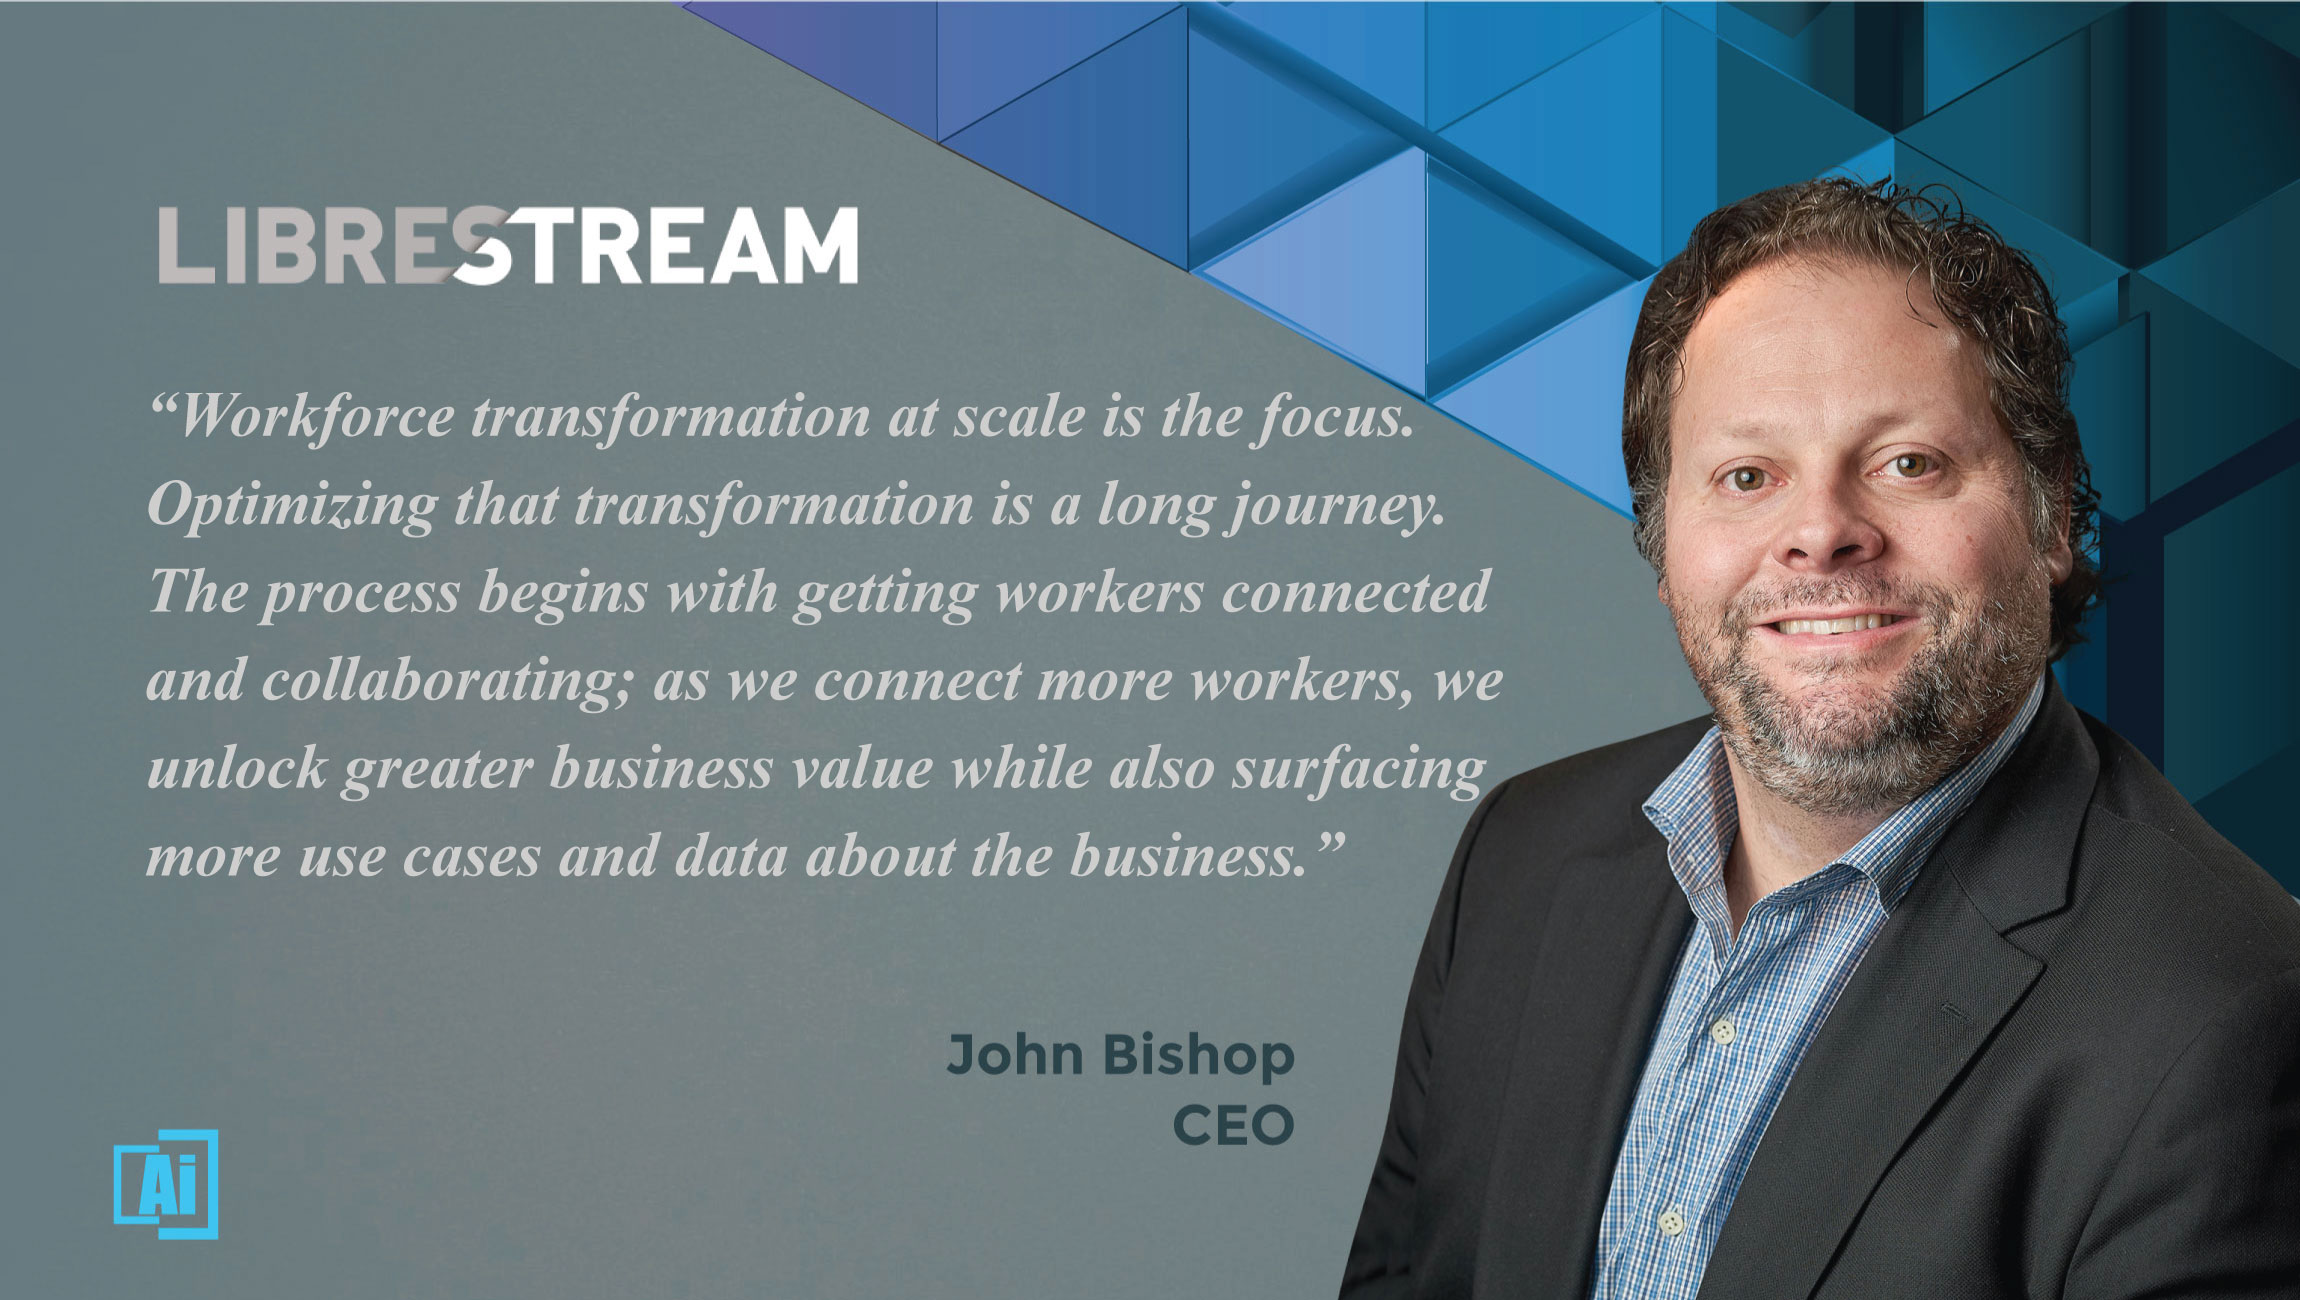 AiThority Interview with John Bishop, CEO at Librestream